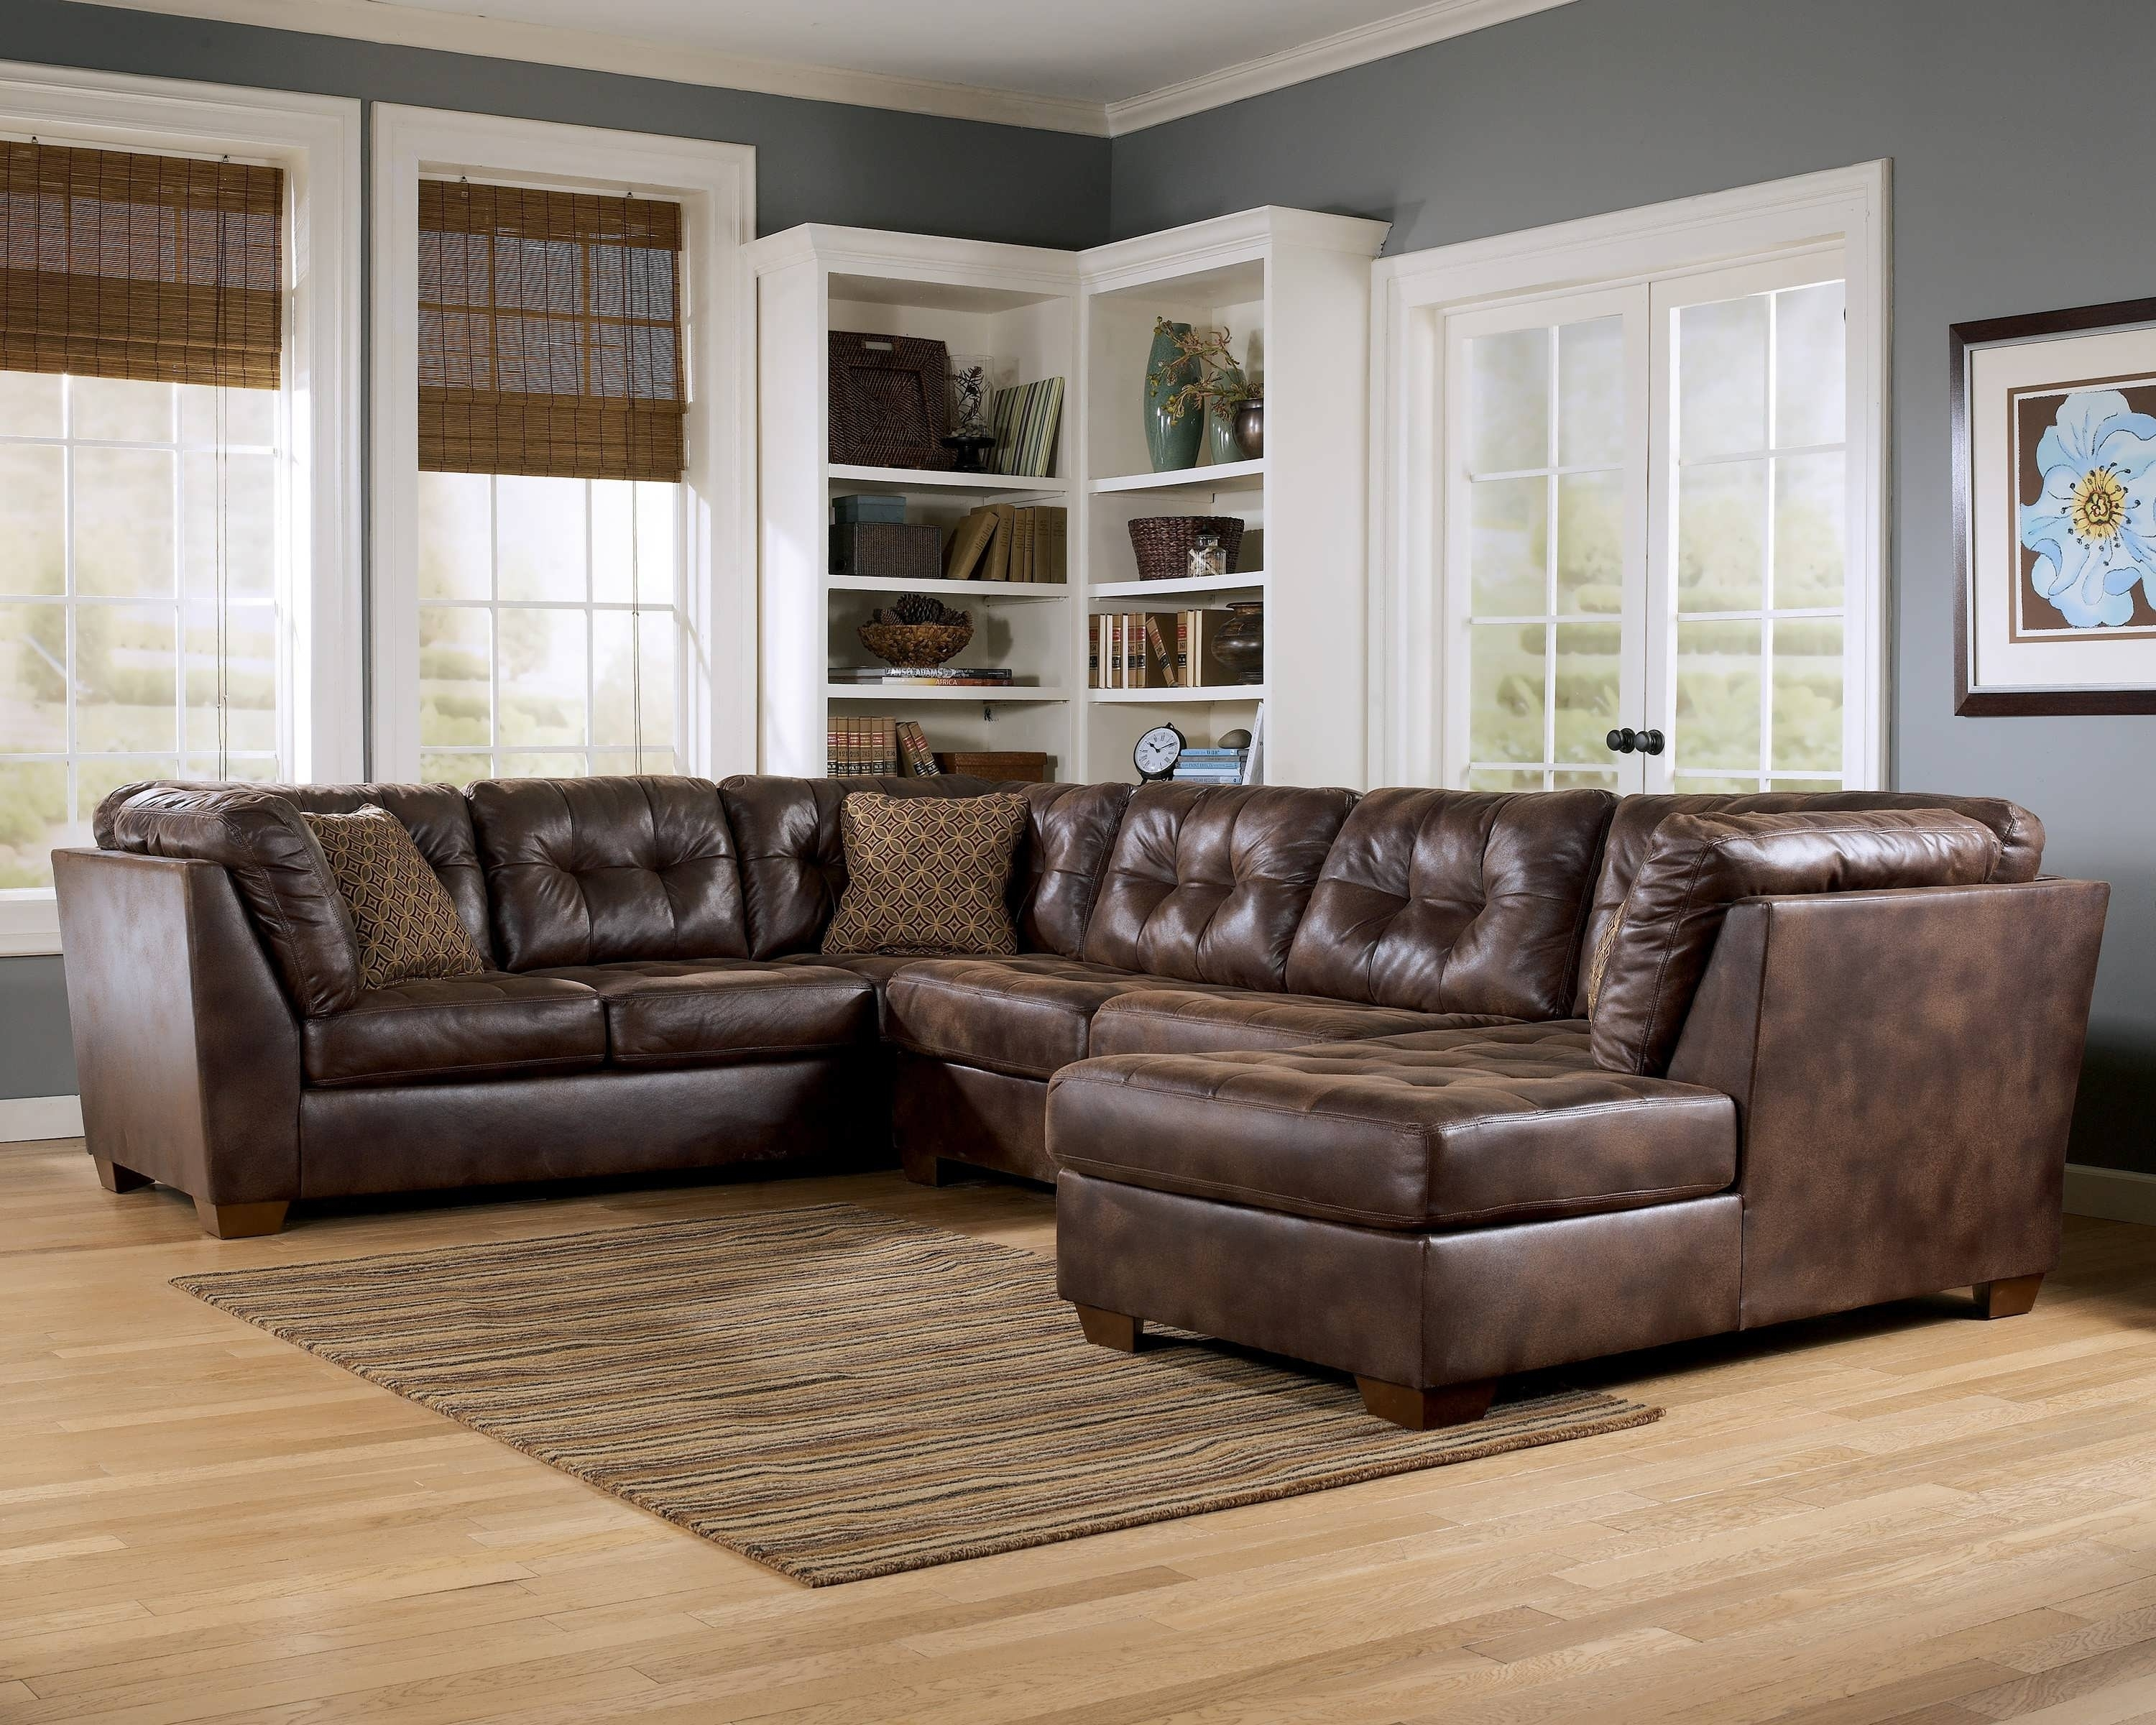 10 Best Memphis Tn Sectional Sofas Sofa Ideas